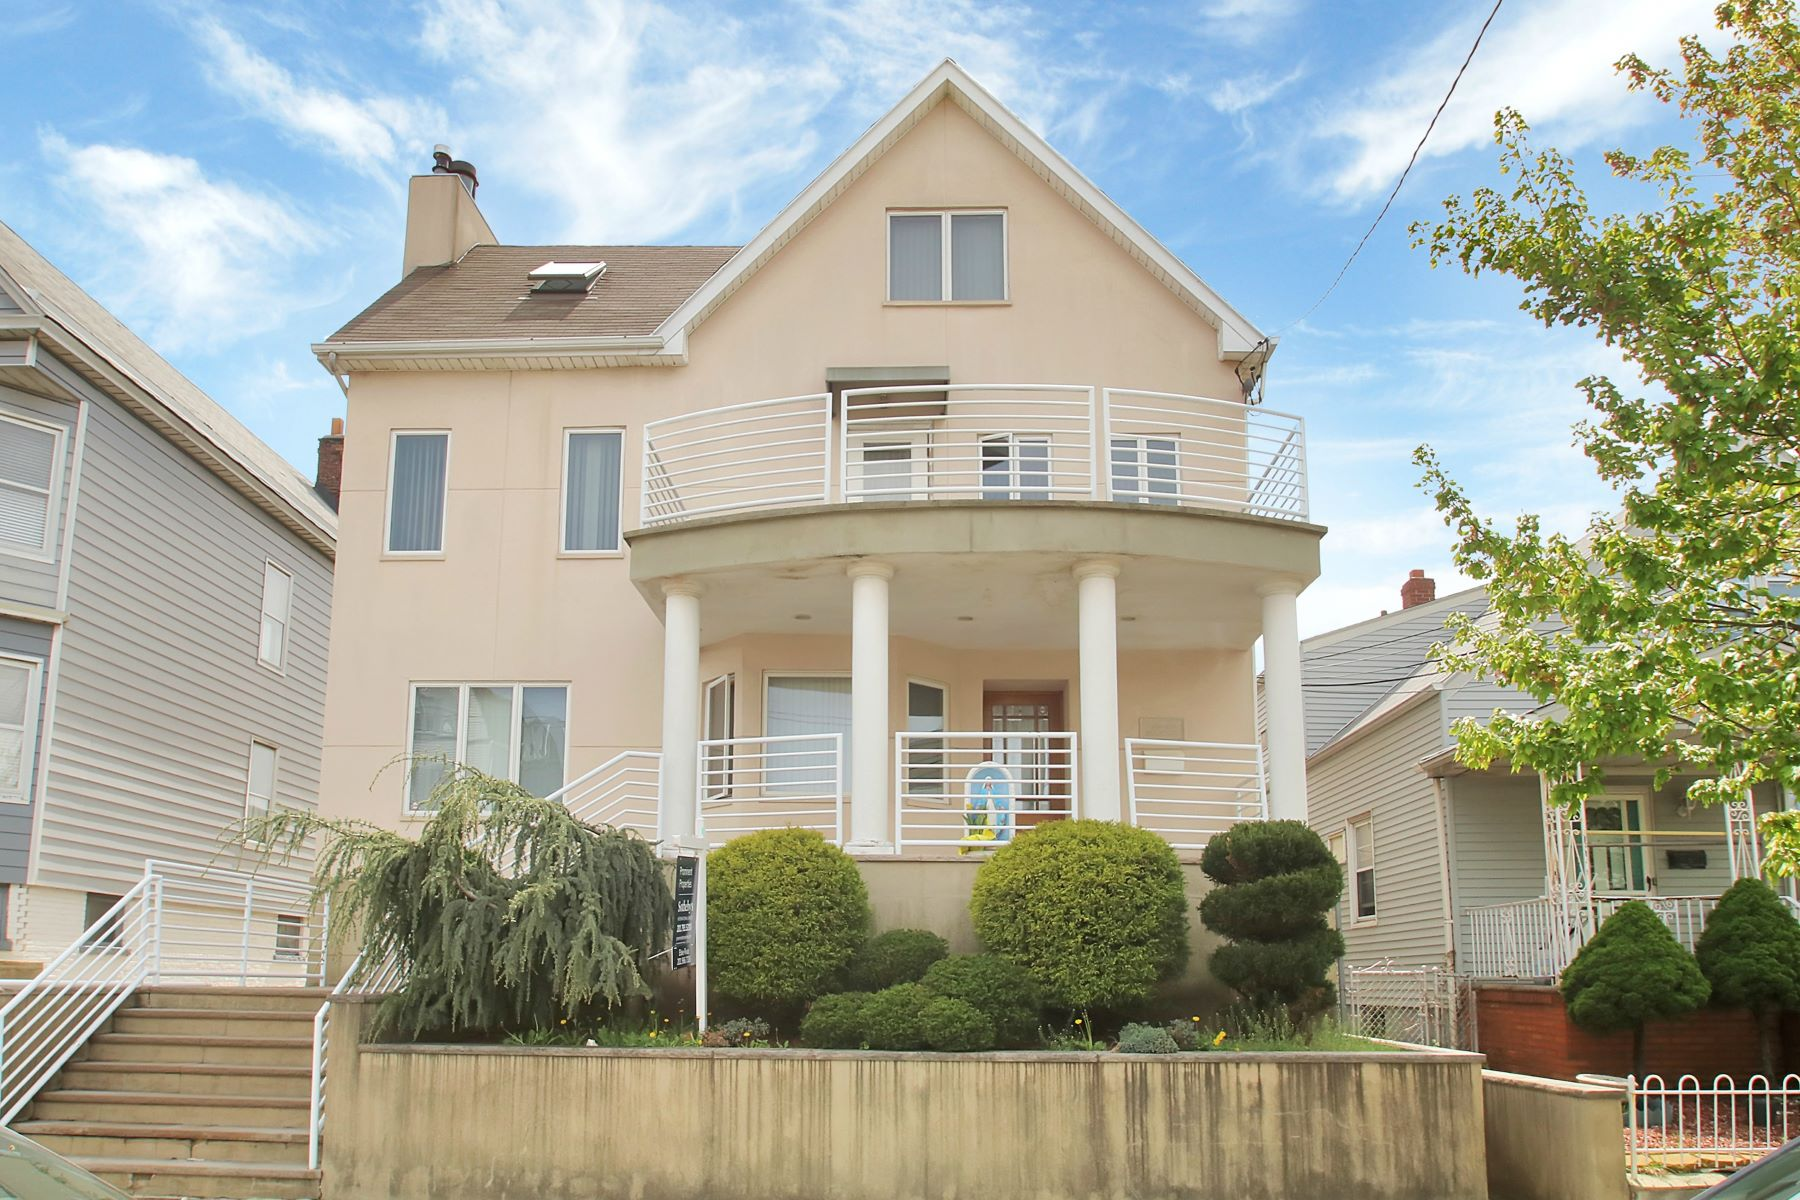 多戶家庭房屋 為 出售 在 Exceptional one of a kind colonial Home 140 West 25th Street Bayonne, 新澤西州 07002 美國